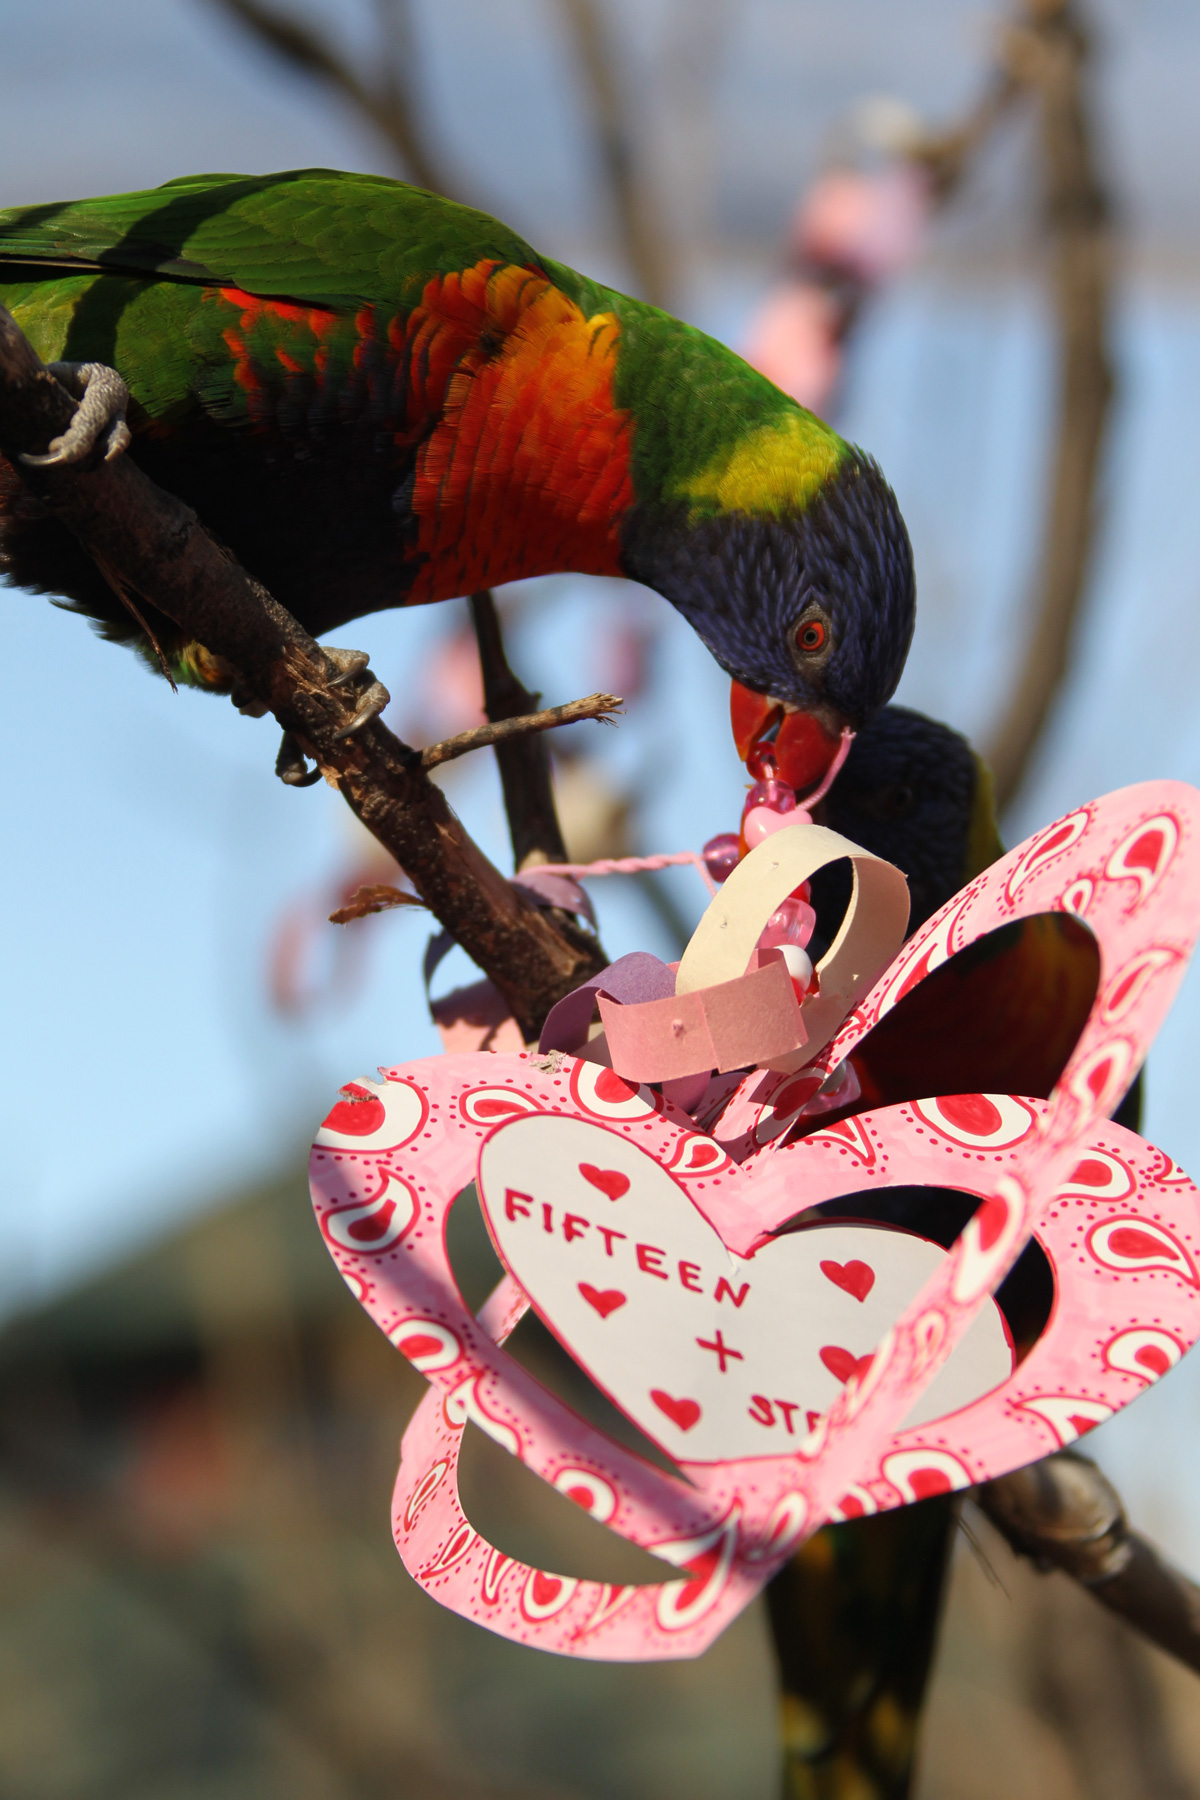 nashville zoo animals are celebrating valentines day with special enrichment items on tuesday feb 14 the zoo uses daily enrichment to promote natural